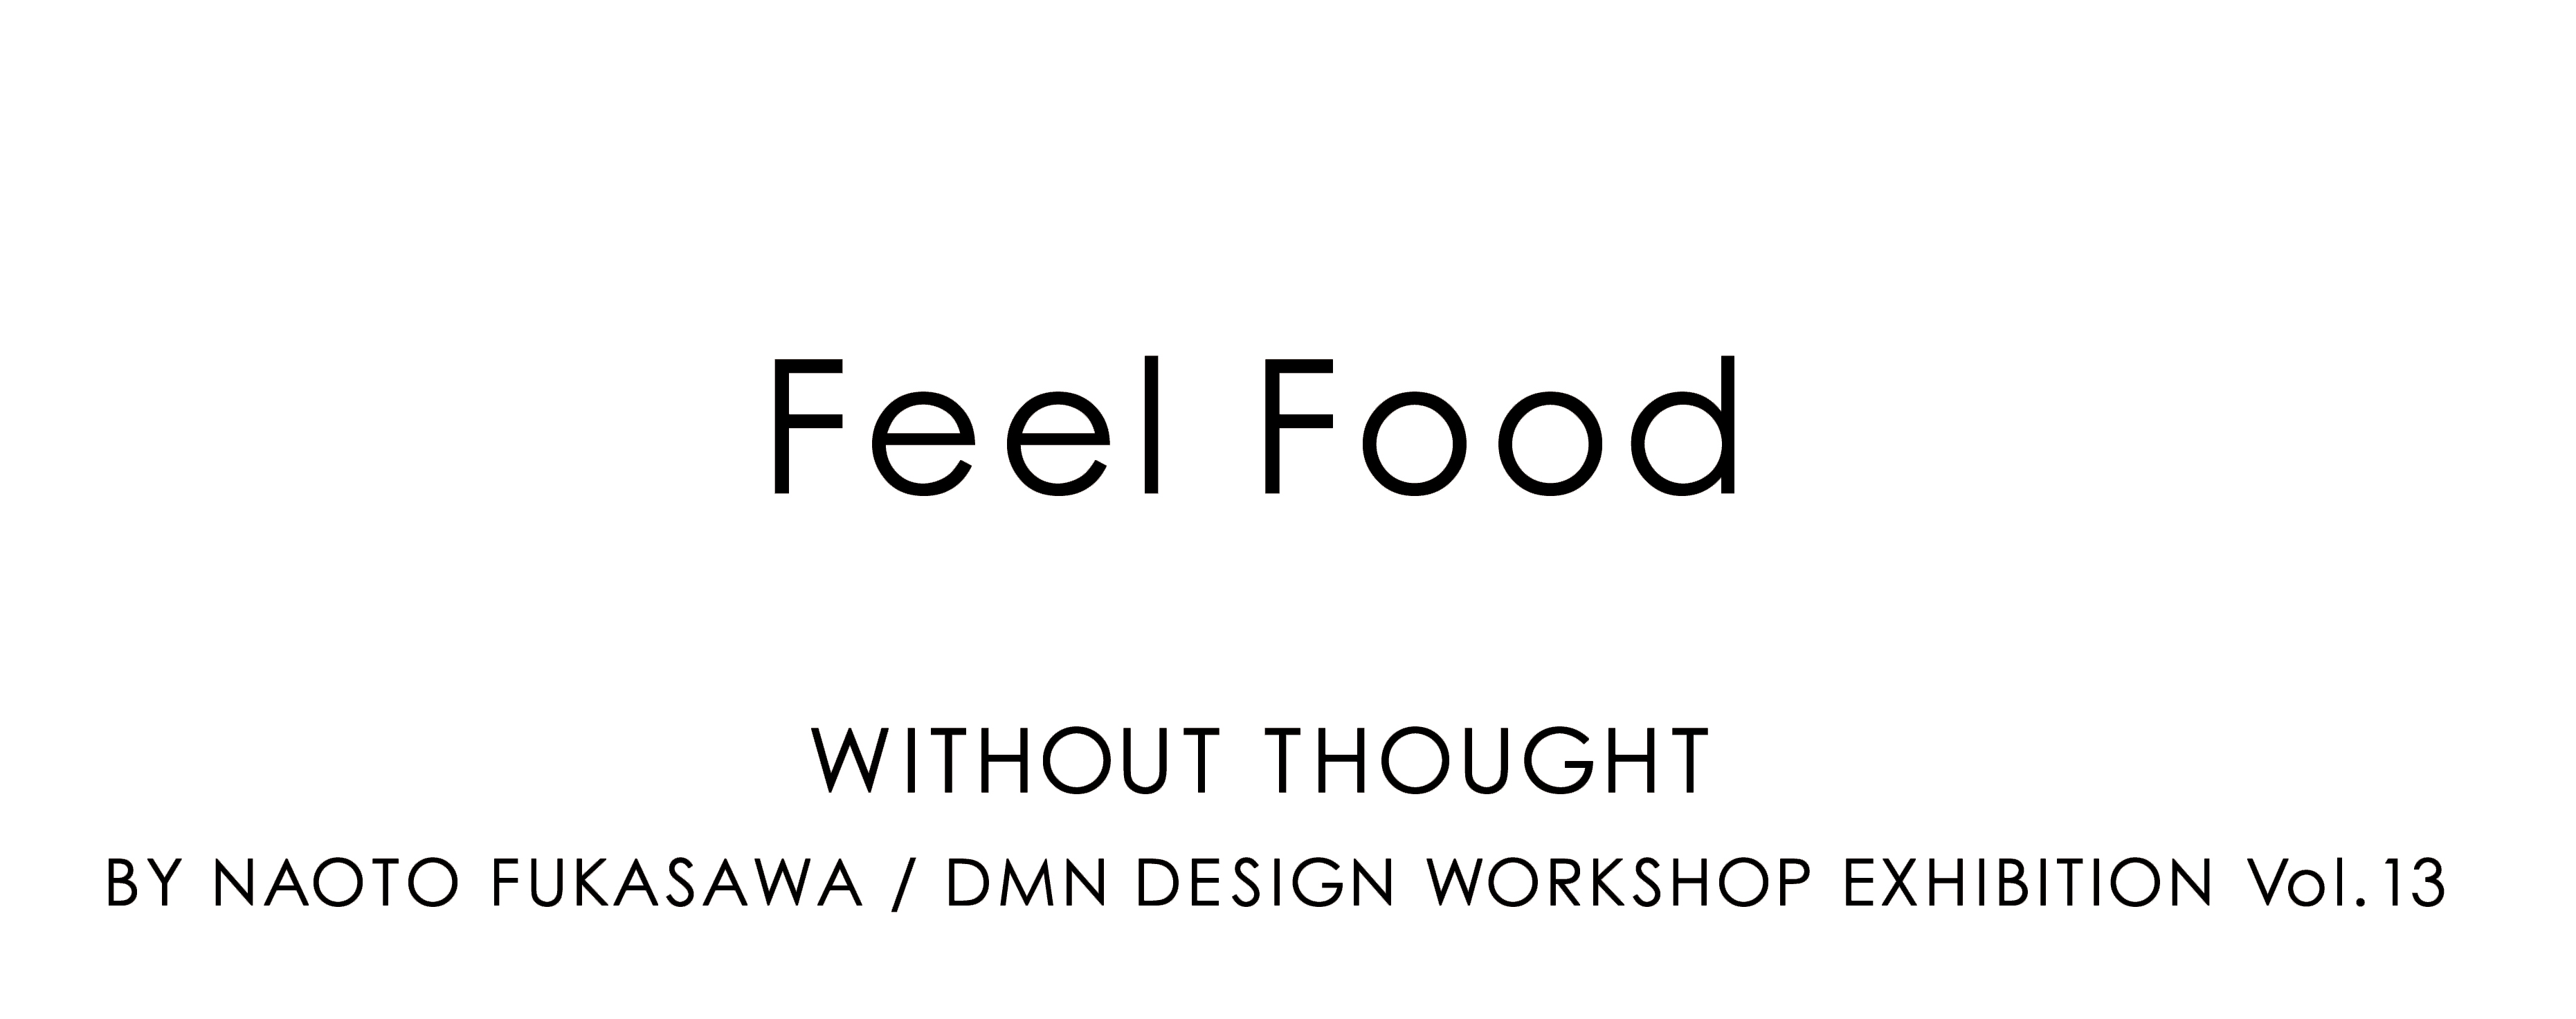 WITHOUT THOUGHT Vol.13 Feel Food